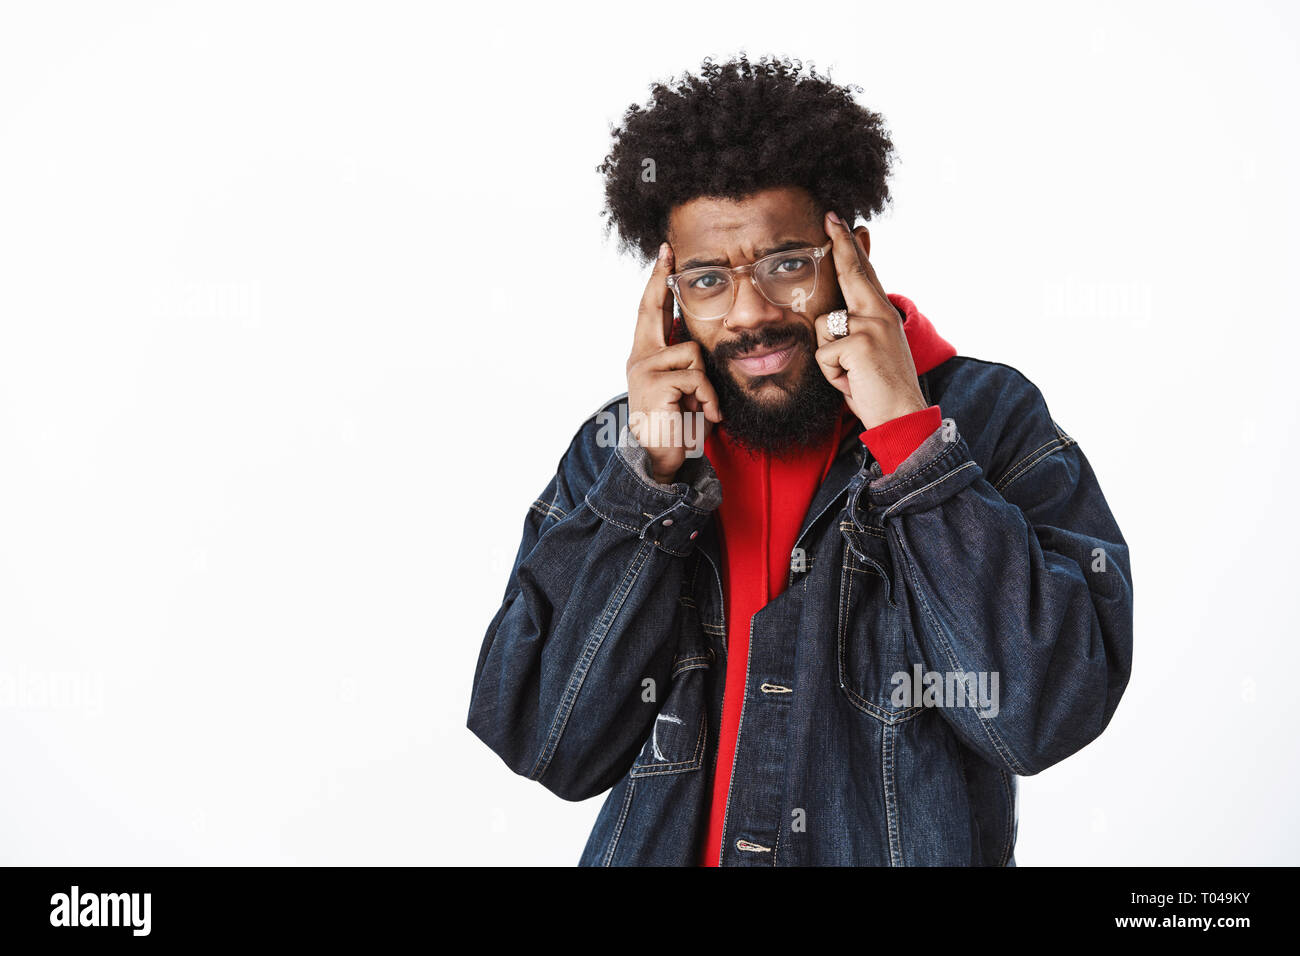 Portrait of confused and frustated sad african american man cannot focus having headache or migraine holding fingers on temples frowning and grimacing - Stock Image